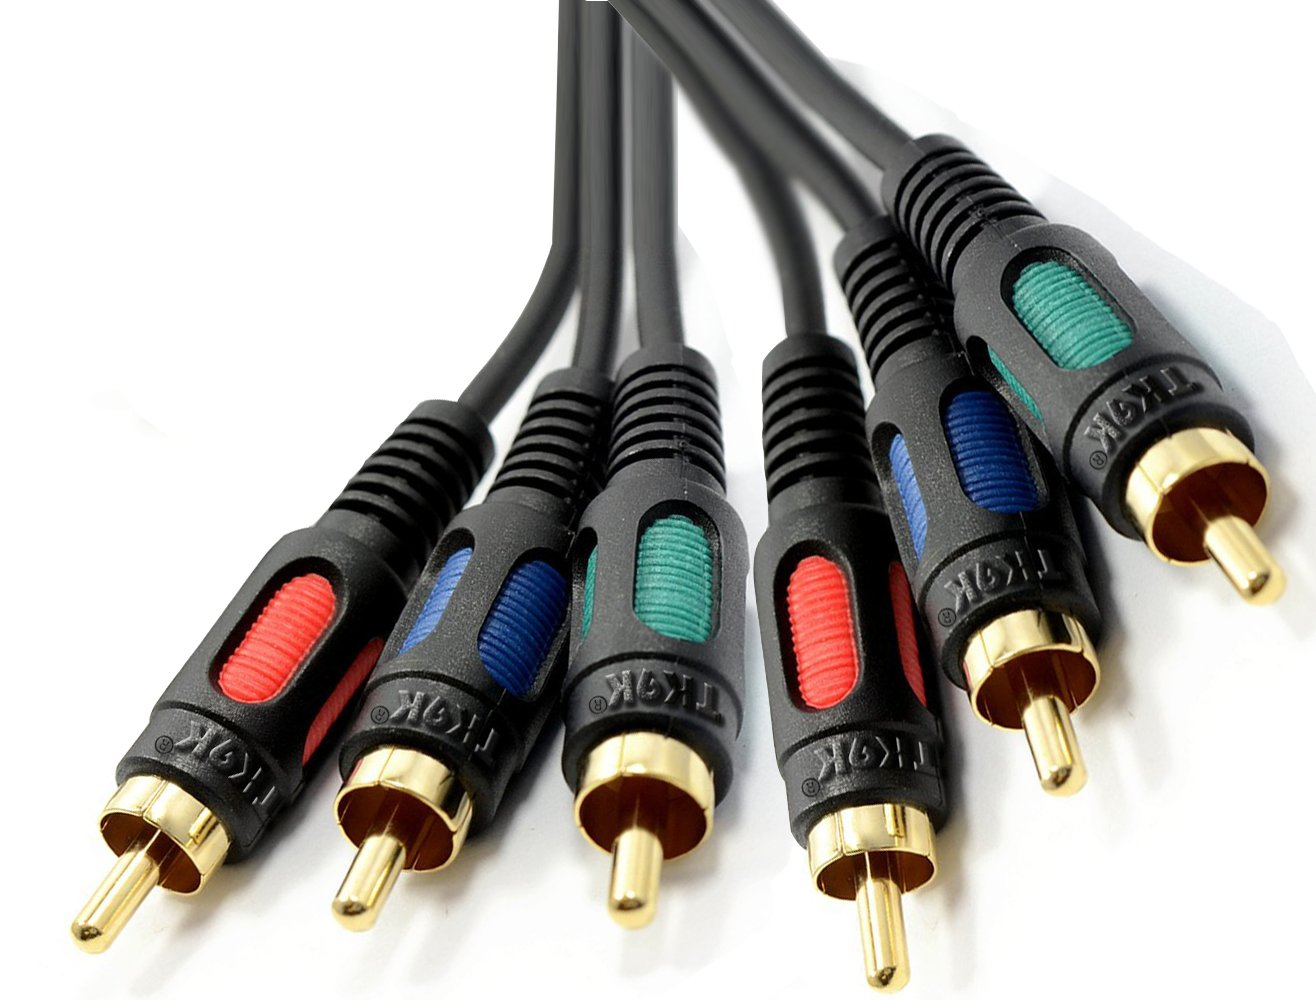 10m RGB Component Video HD Cable Lead YpbPr GOLD YUV, High Quality Cable with Gold plated Brass Ends, for Component Video connection TK9K®